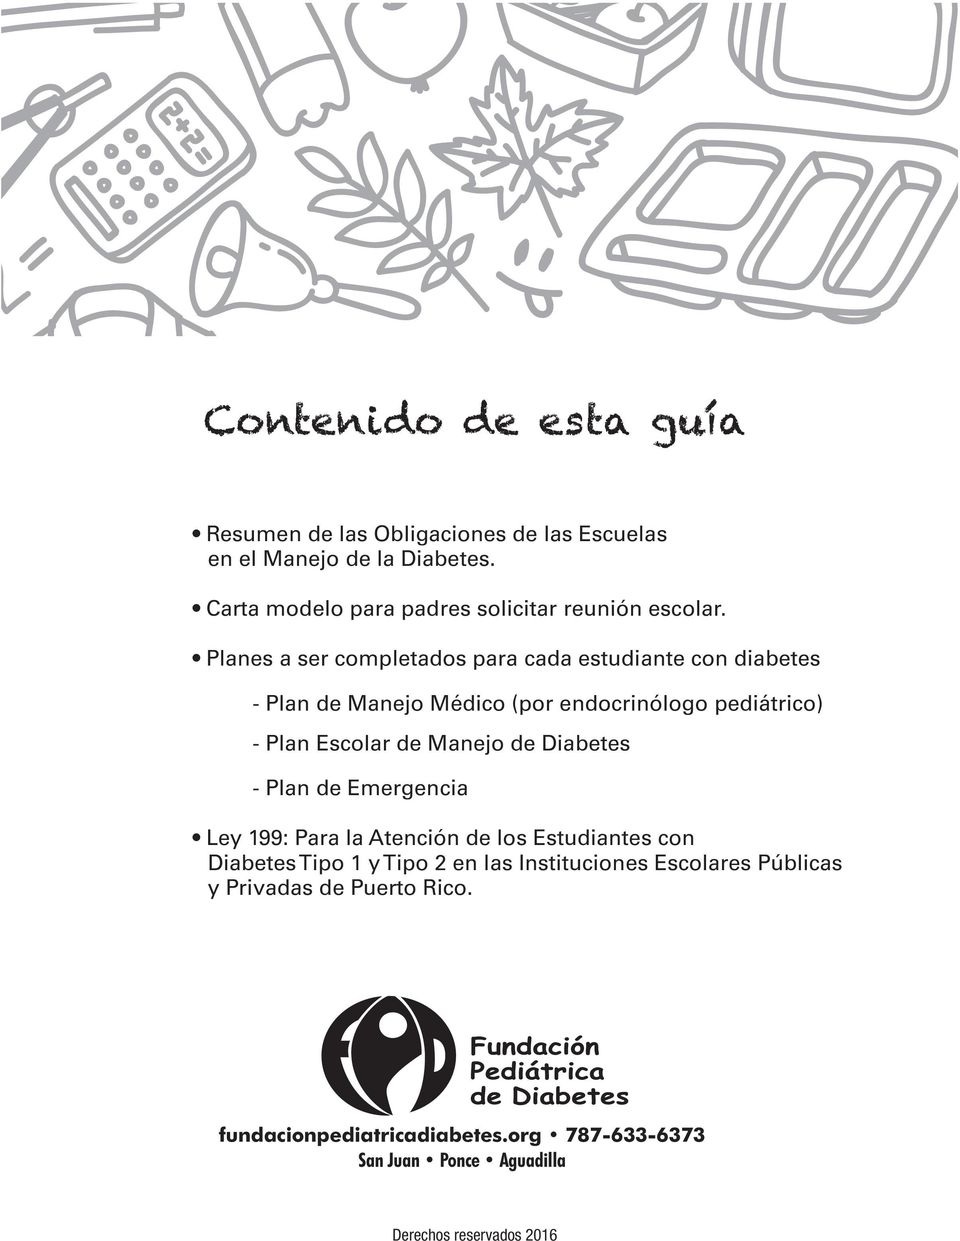 plan de manejo de diabetes escolar